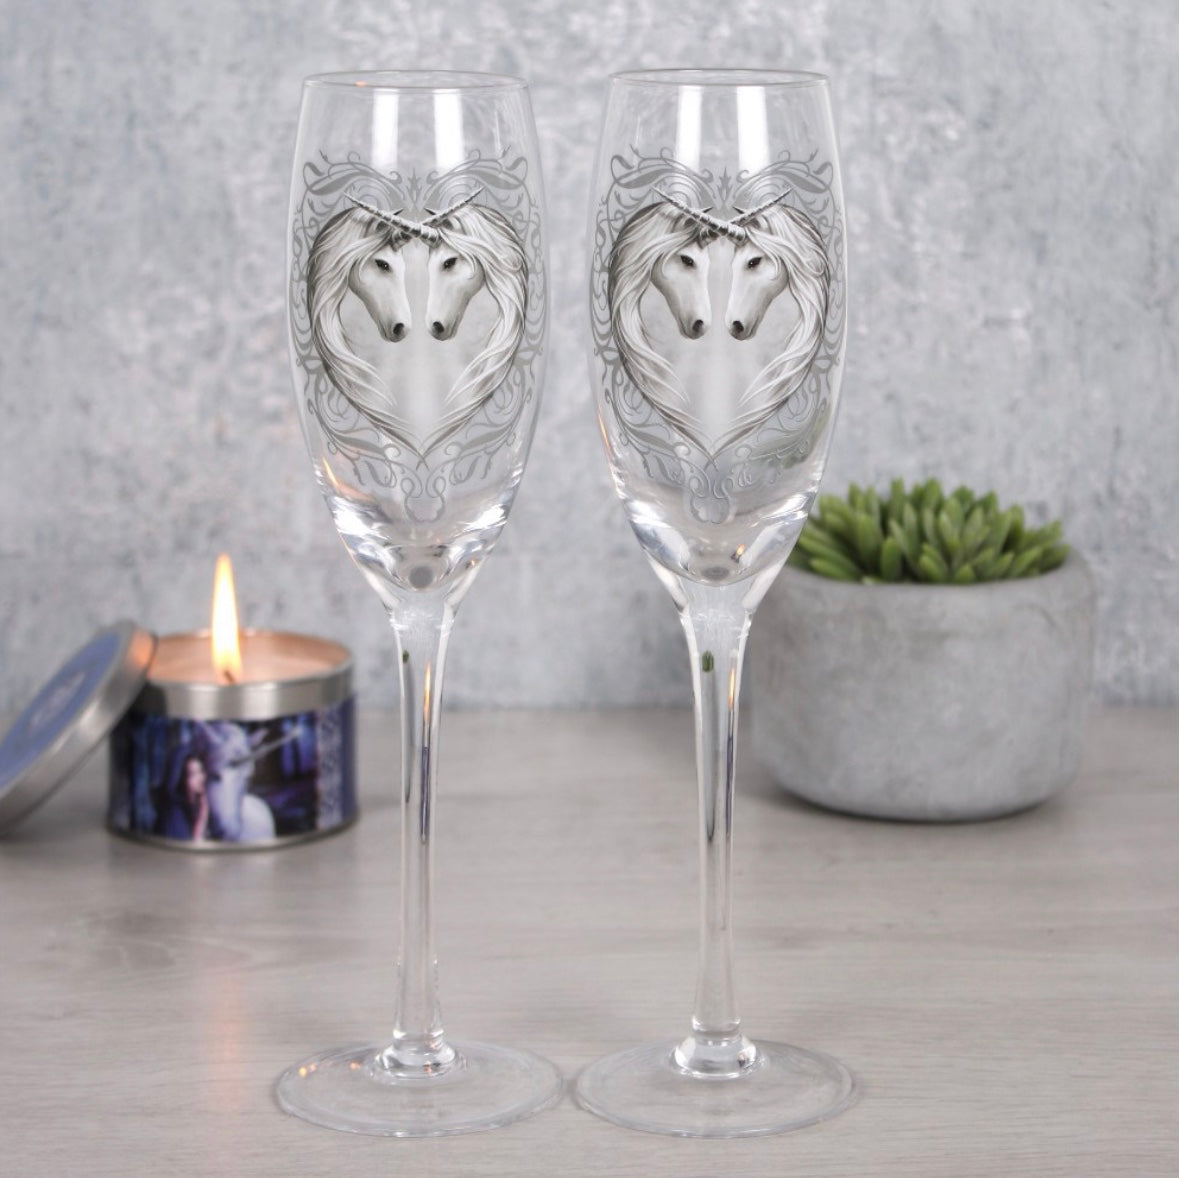 Unicorn Champagne Glasses